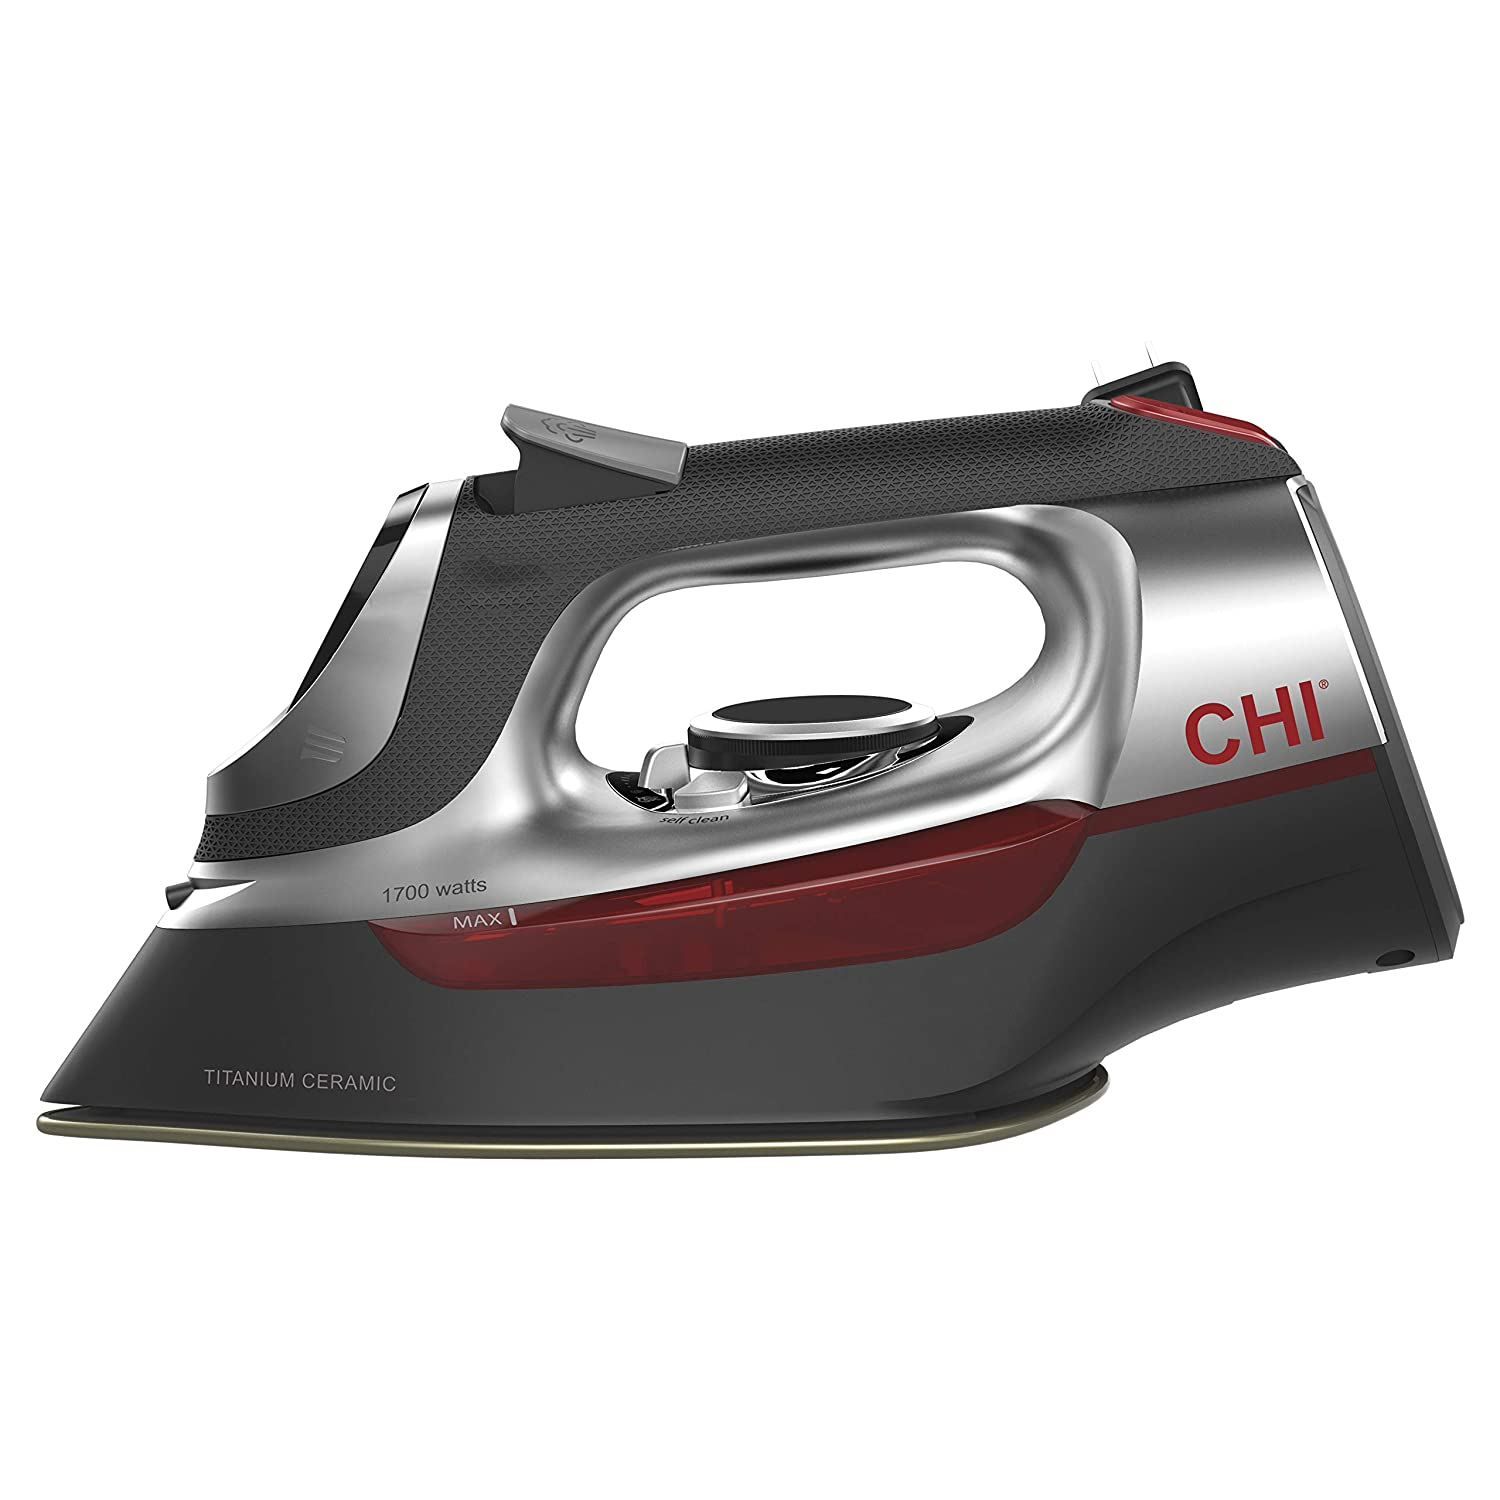 CHI 13102 Steam Iron